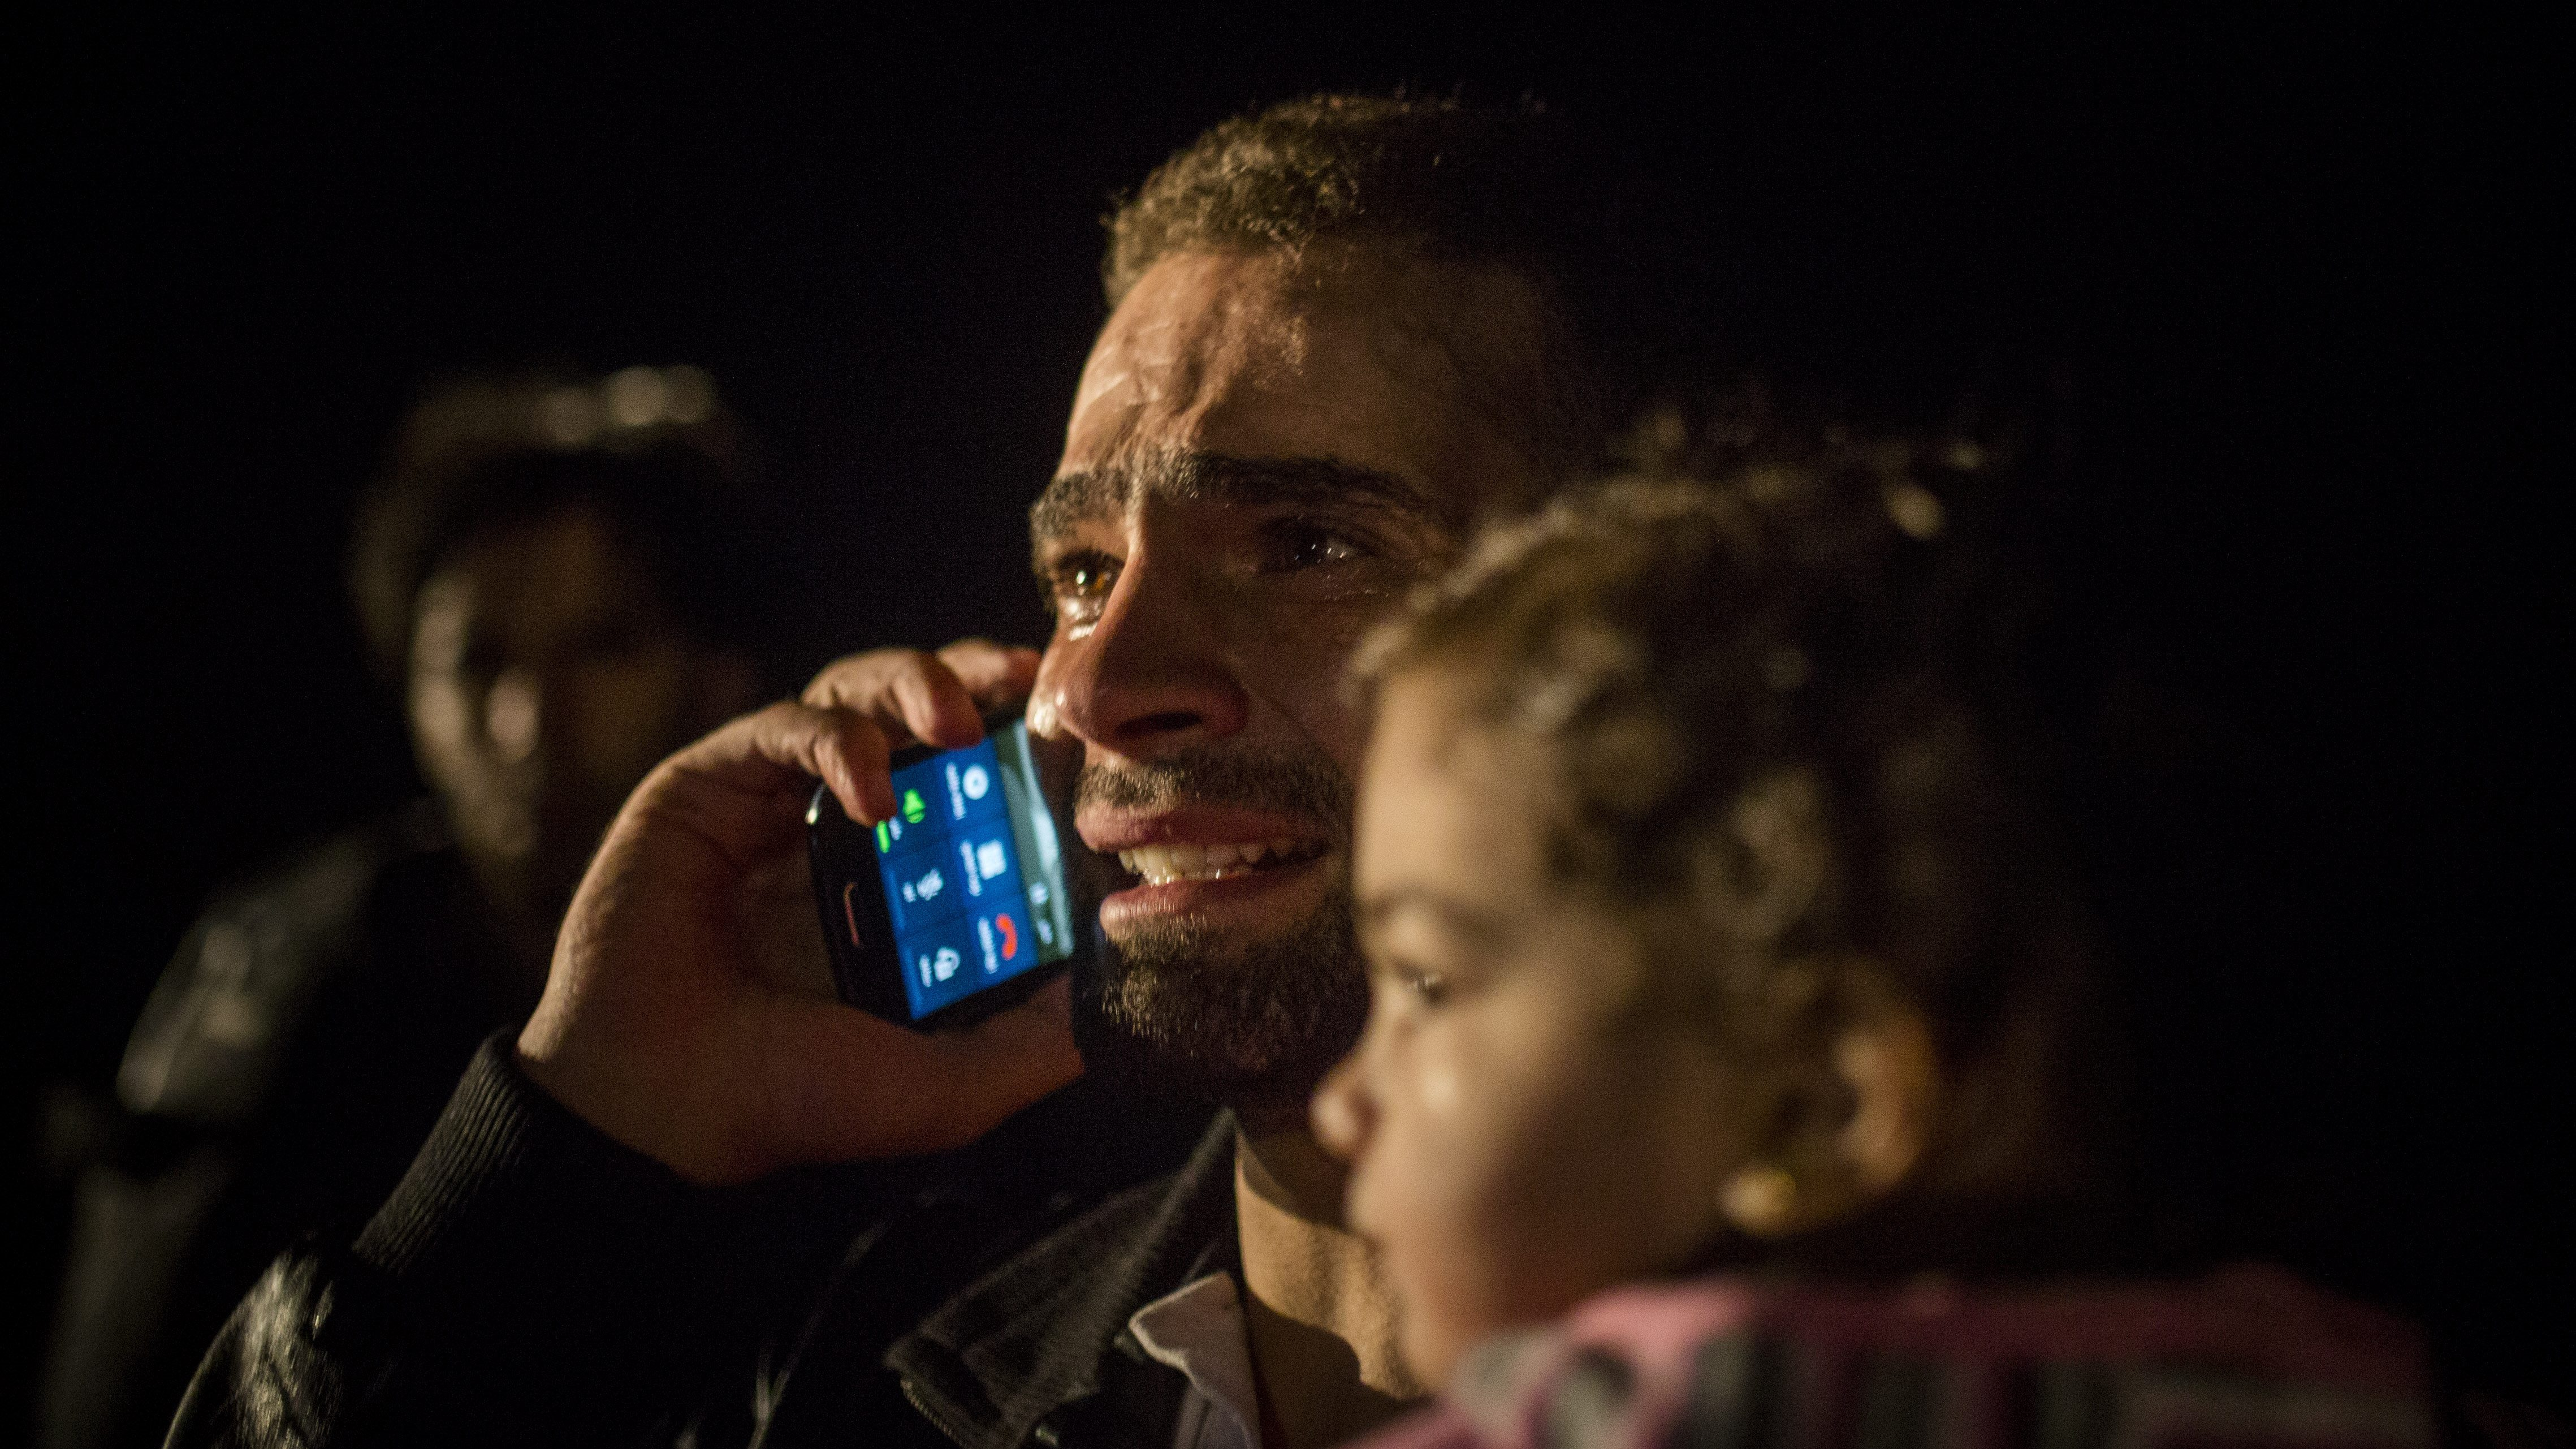 A Syrian man holds his daughter while making a phone call immediately after his arrival on a dinghy from the Turkish coast to the northeastern Greek island of Lesbos, Thursday, Oct. 8, 2015. More than 500,000 people have arrived in the European Union this year, seeking sanctuary or jobs and sparking the EU's biggest refugee emergency in decades. (AP Photo/Santi Palacios)